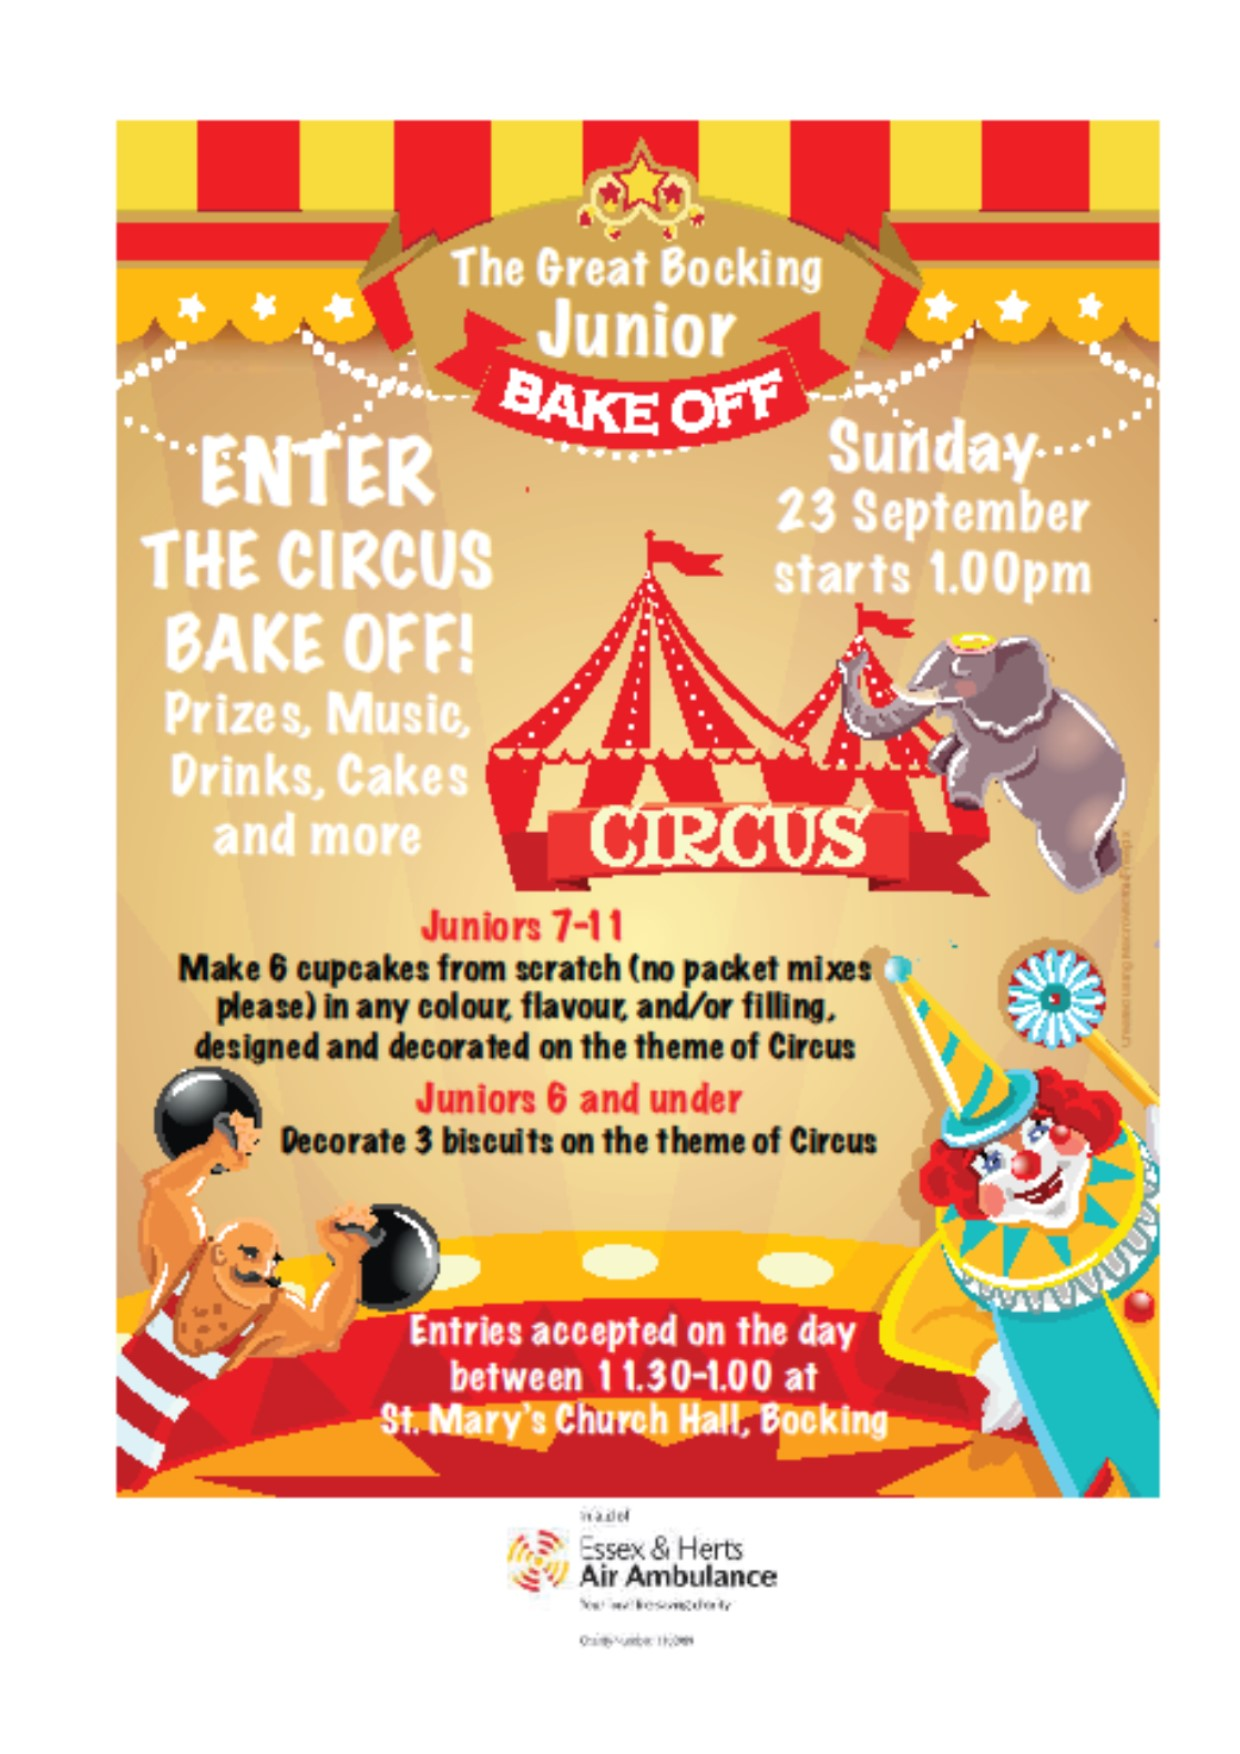 Bake Off junior poster final version 2018.jpg